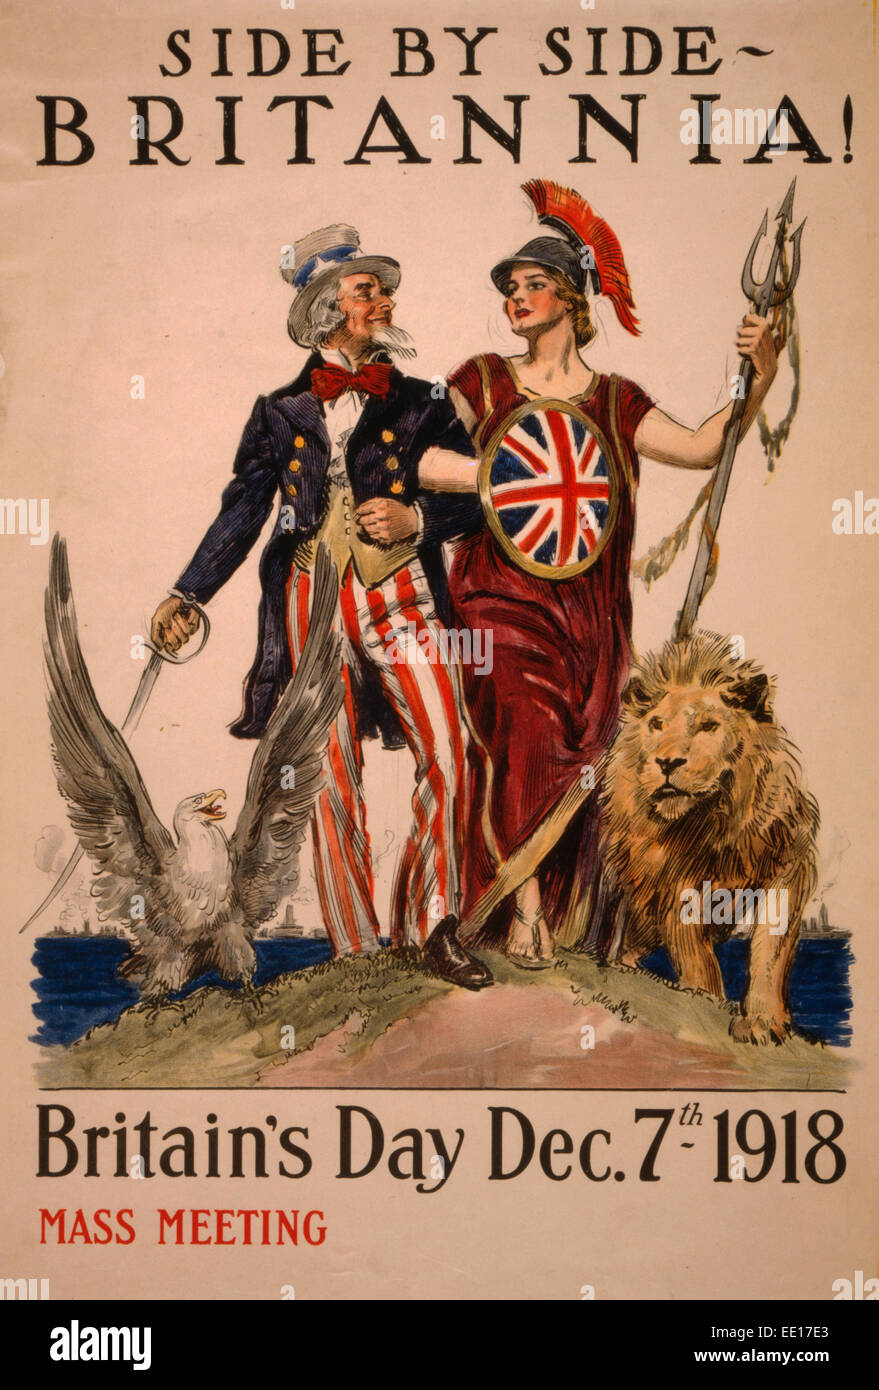 Side by side - Britannia! Britain's Day December 7th 1918 - Poster showing Uncle Sam arm-in-arm with Britannia, - Stock Image